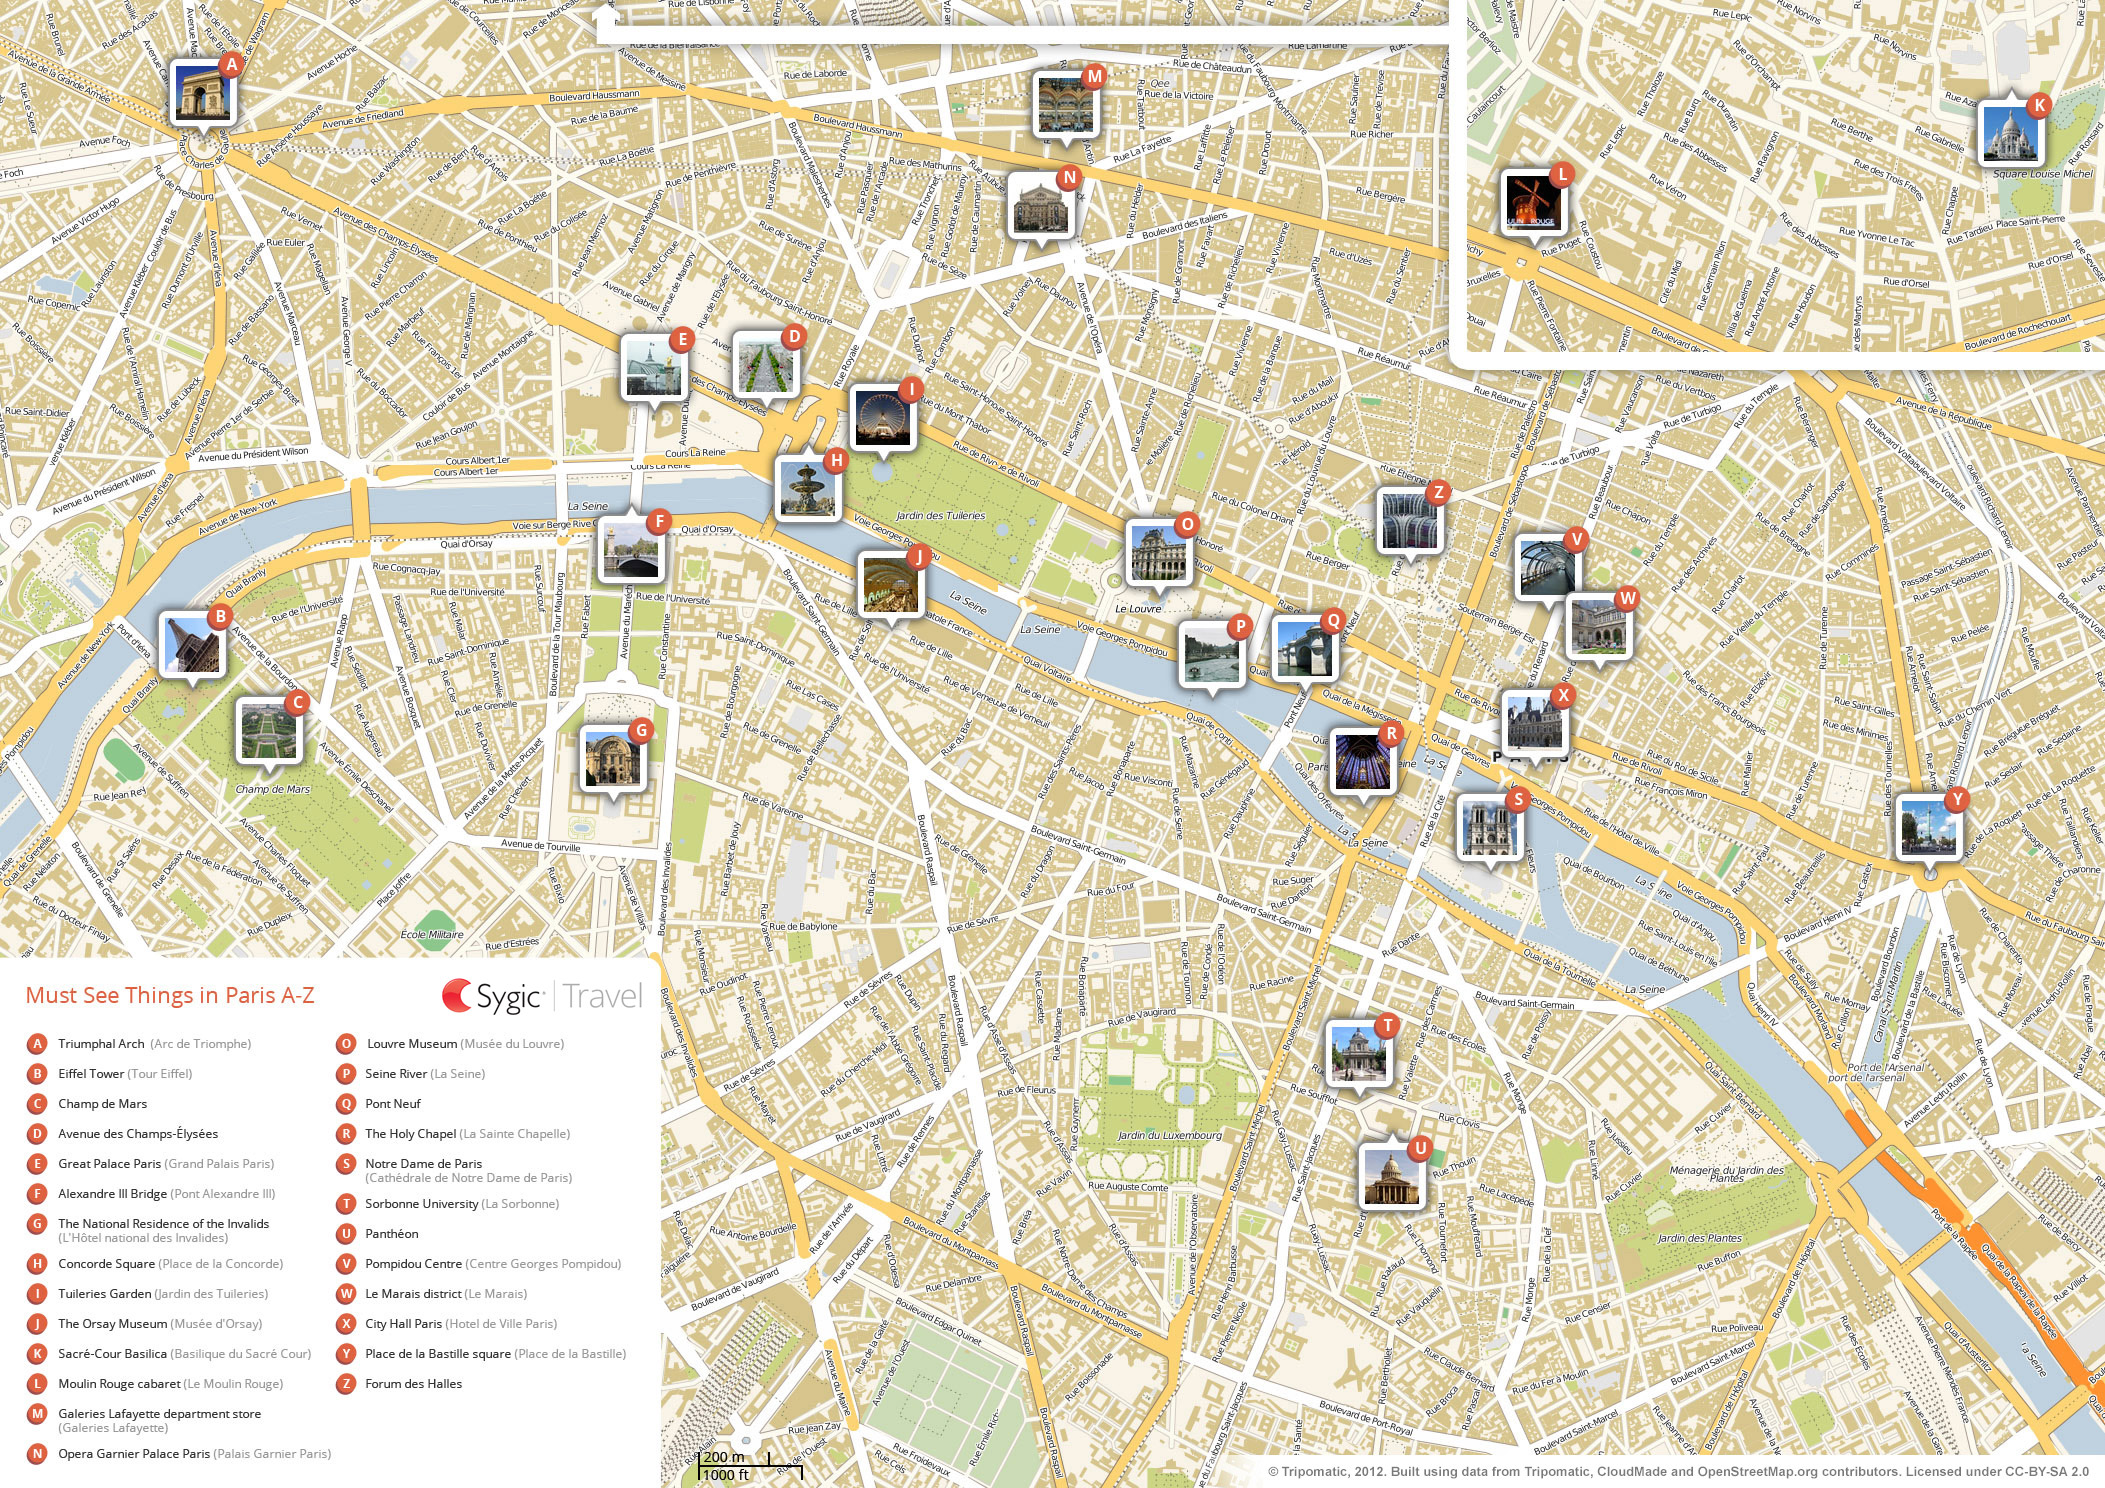 Paris Printable Tourist Map – Attraction Map of Paris